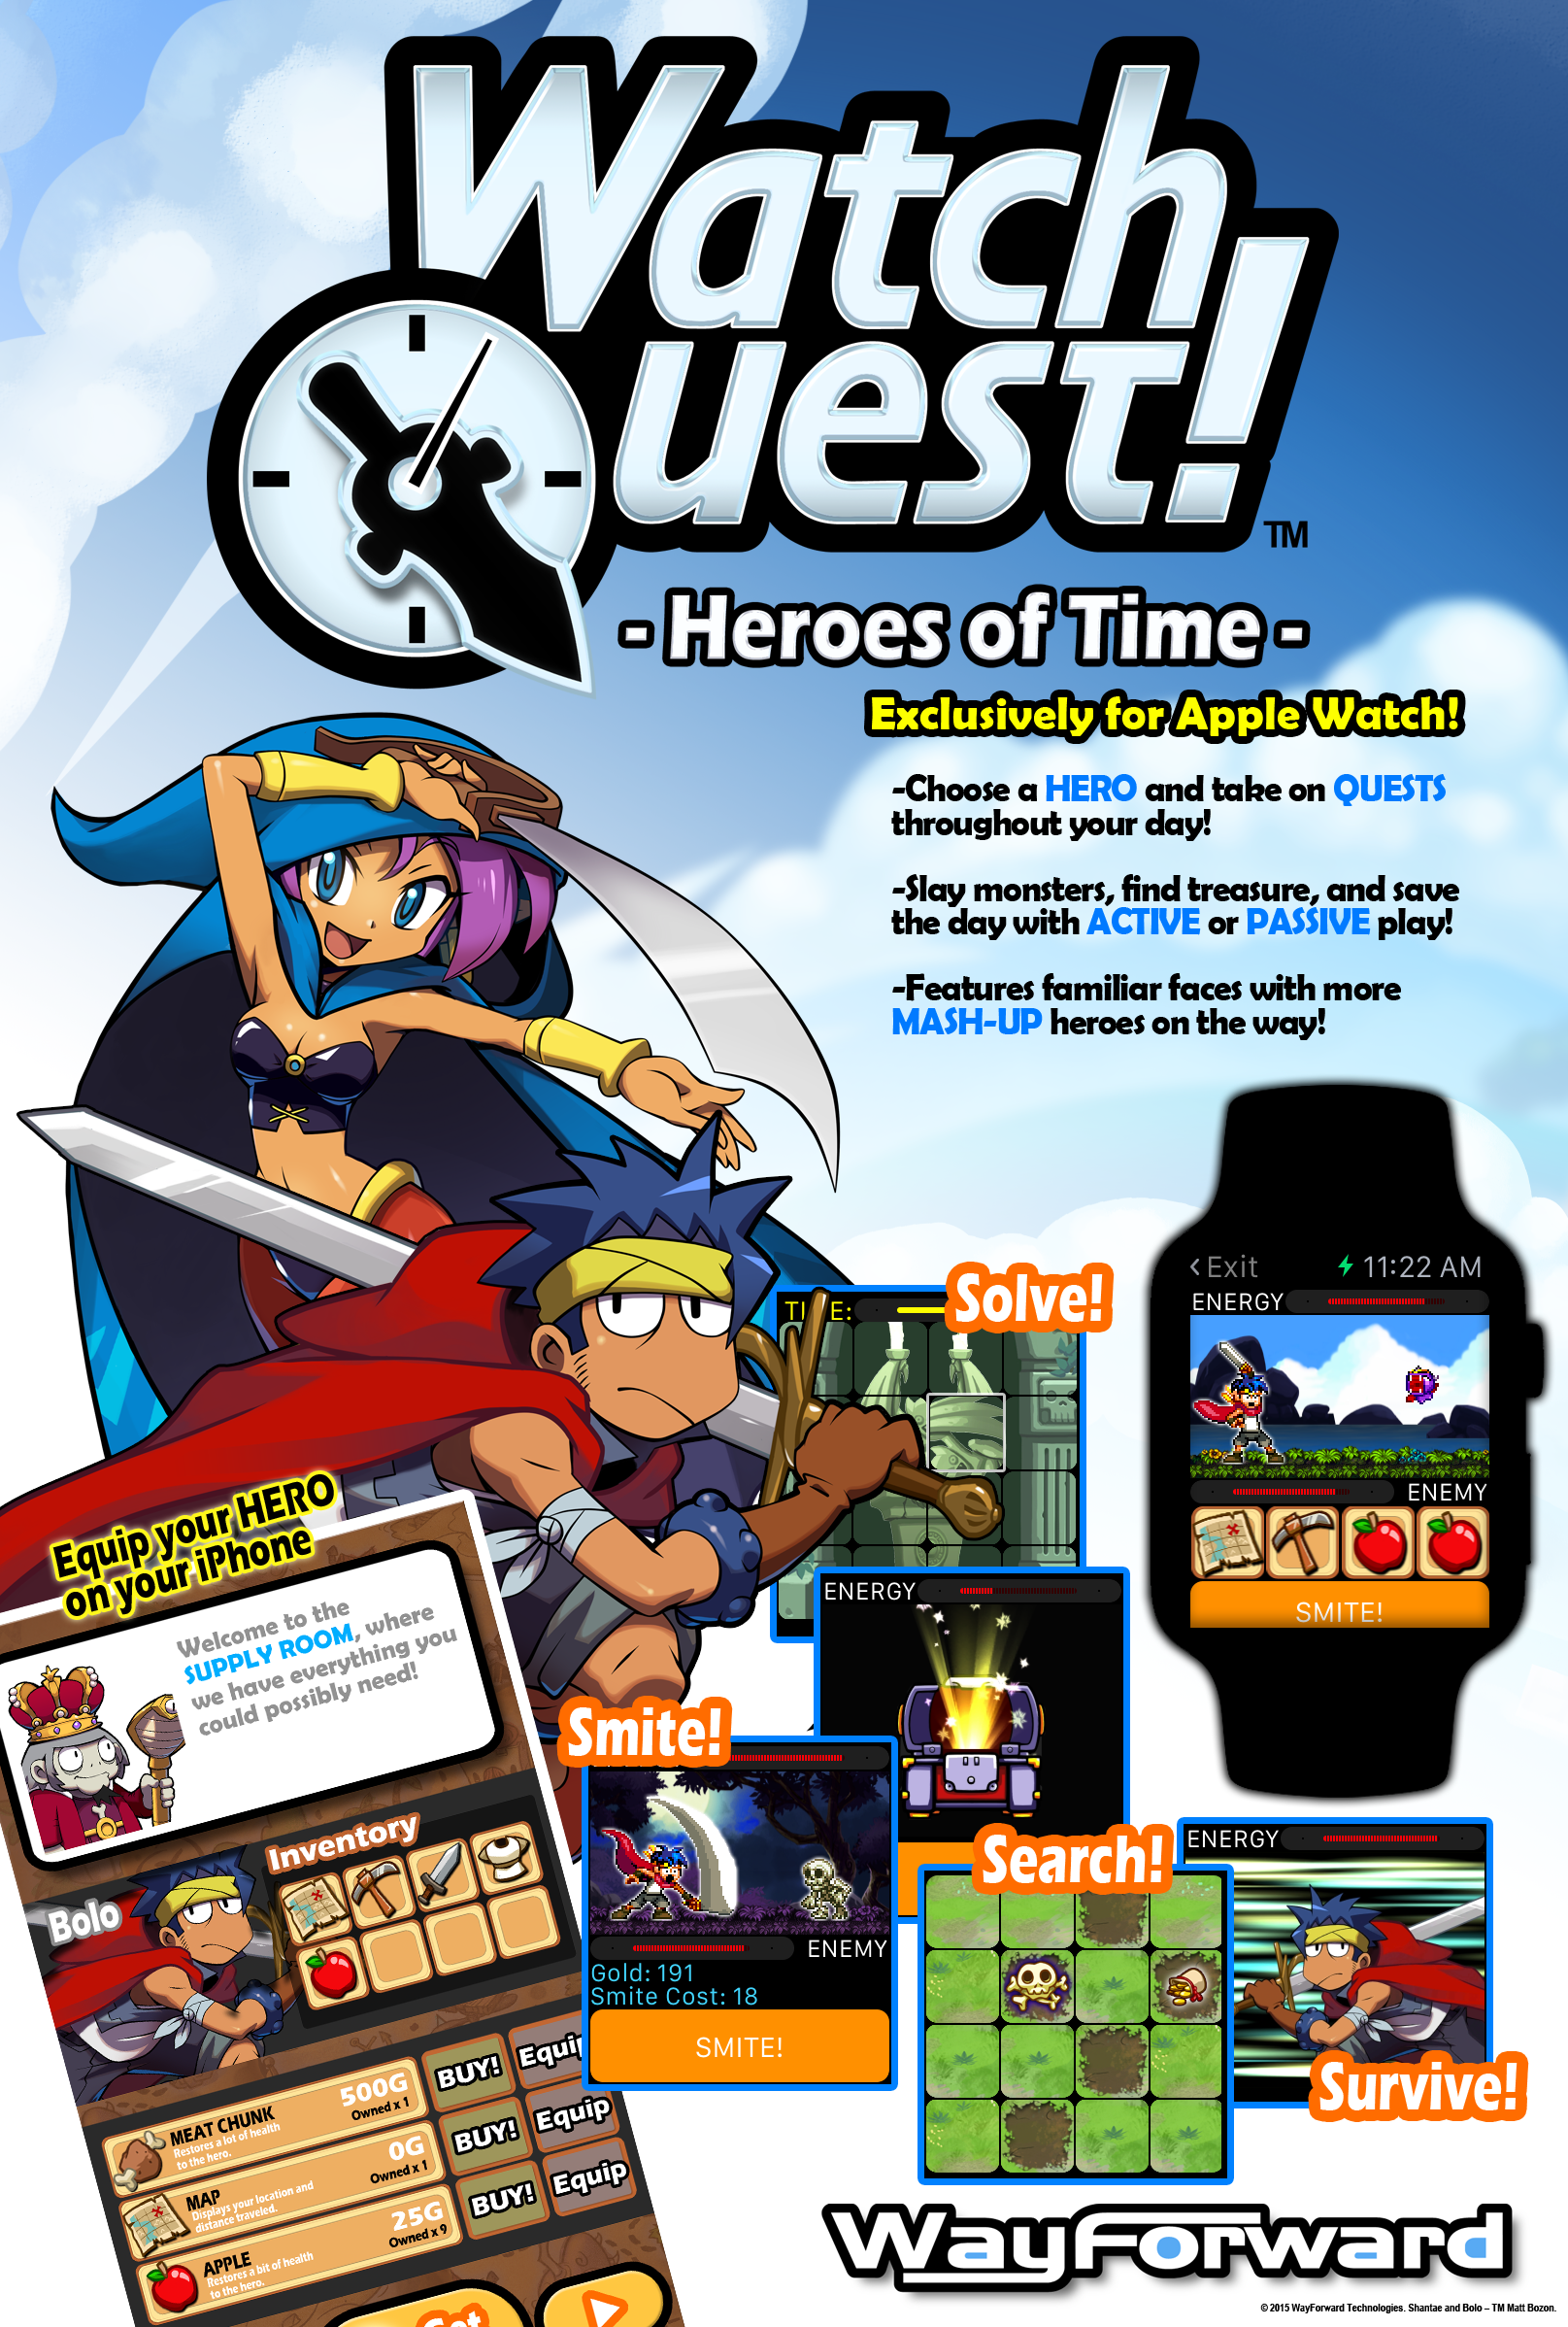 Apple Watch Poster Watch Quest Poster Apple Watch